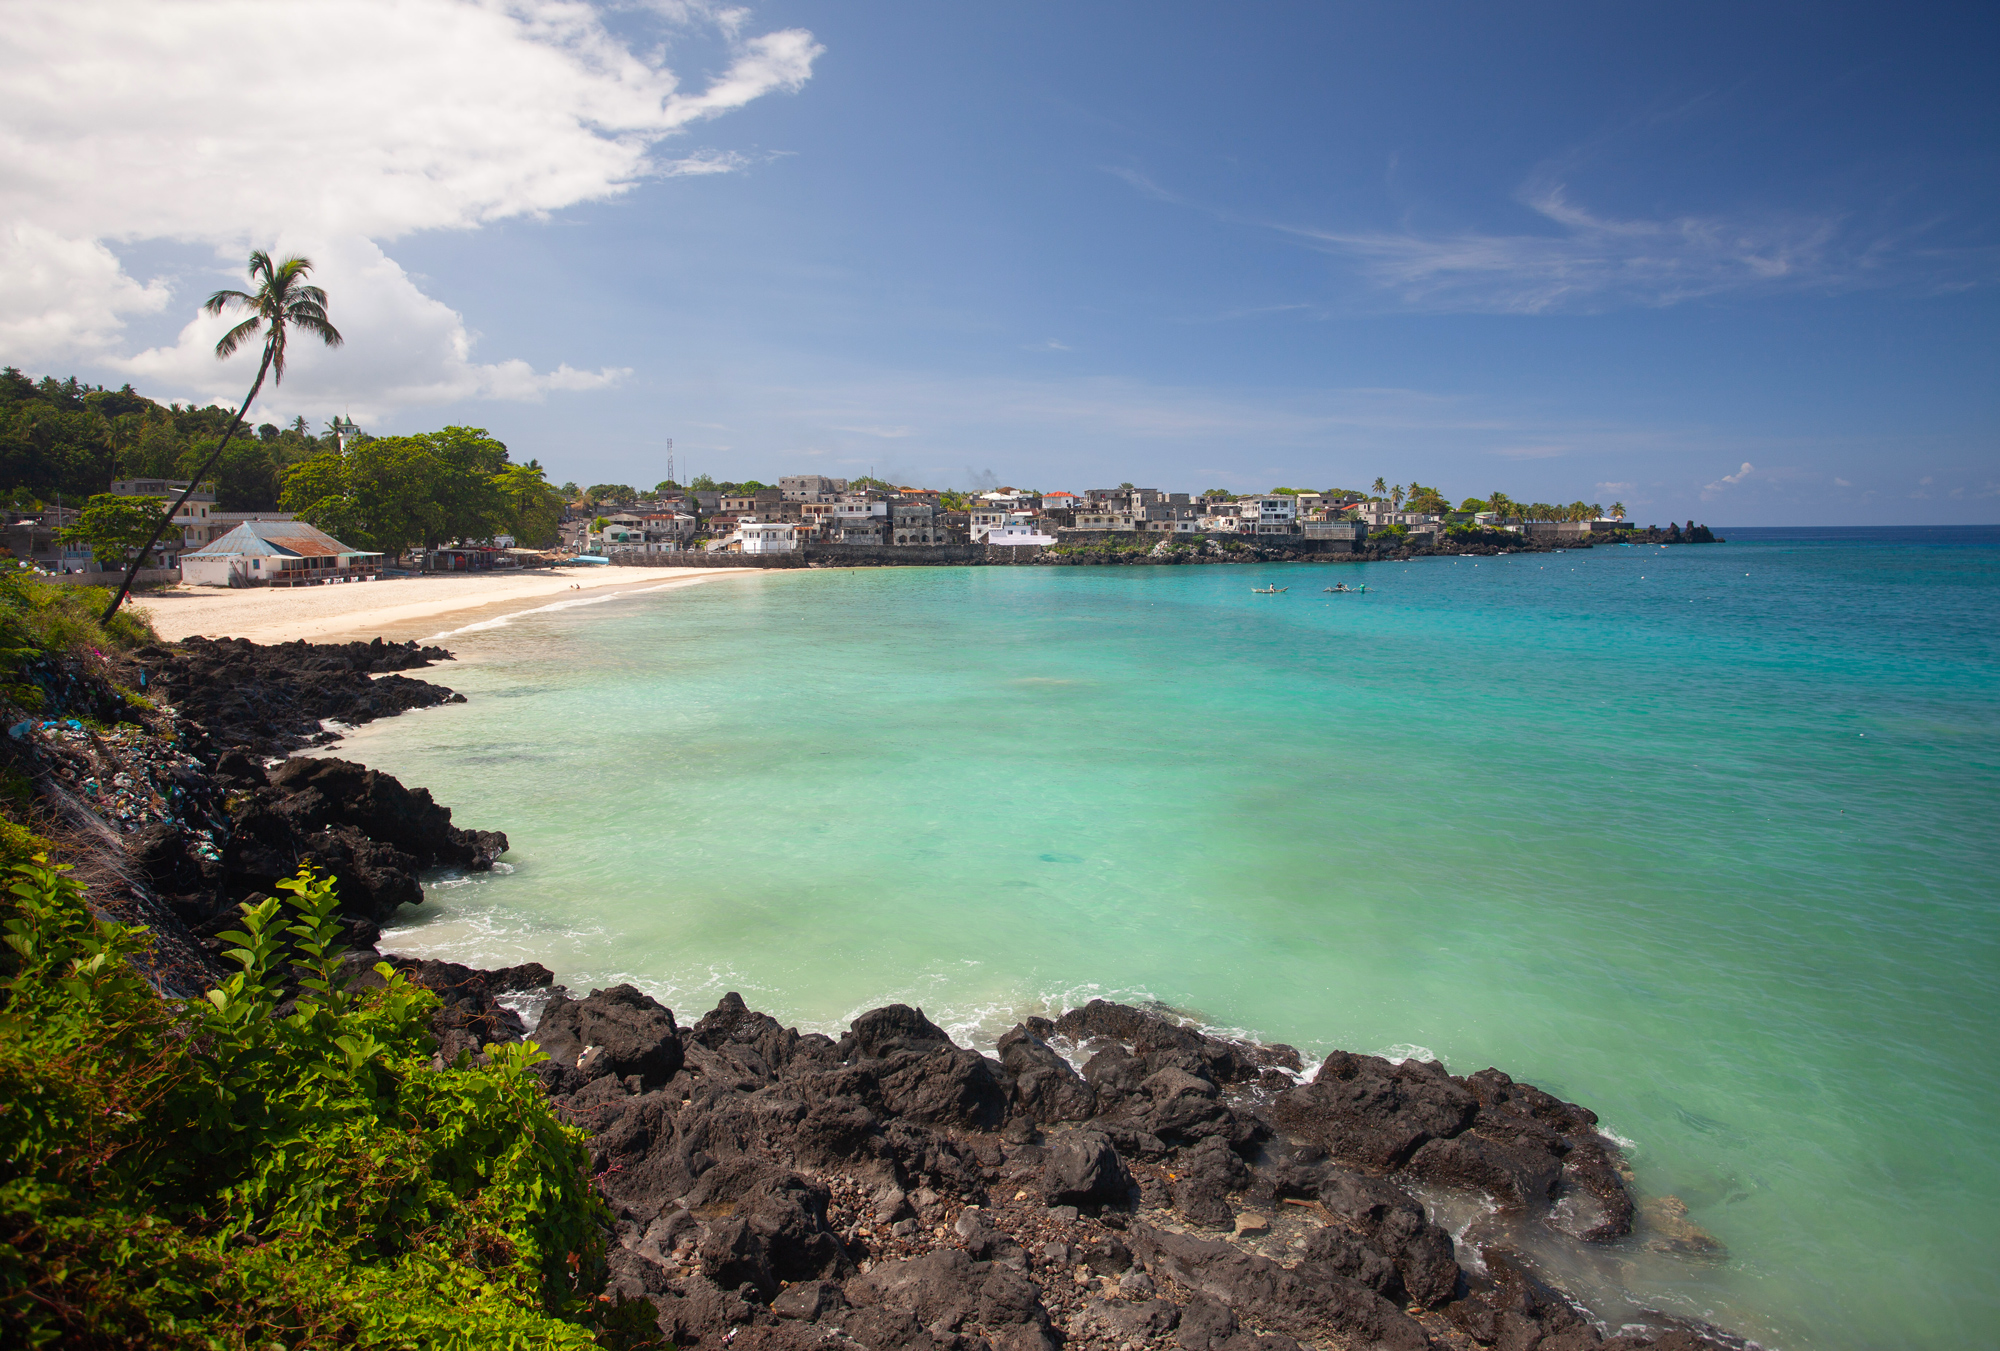 A beach in the capital city of Moroni on Grande Comore